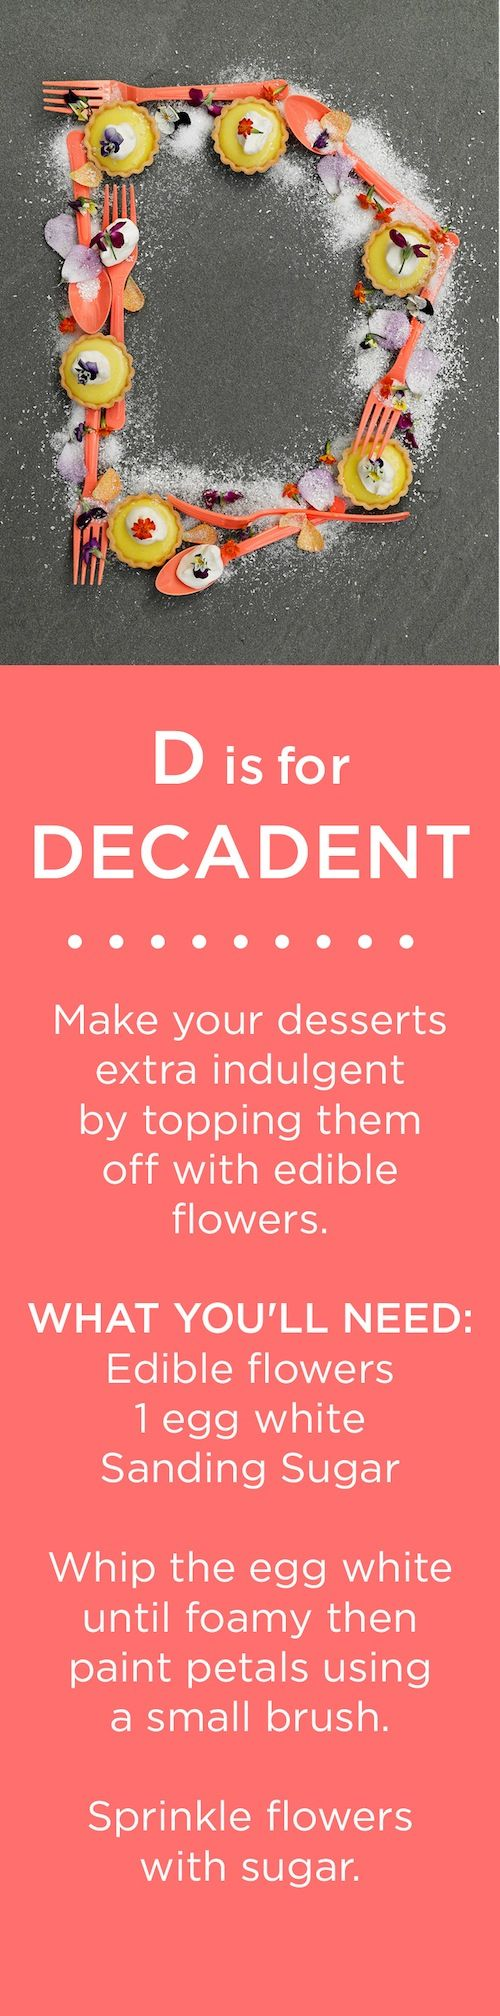 D is for DECADENT